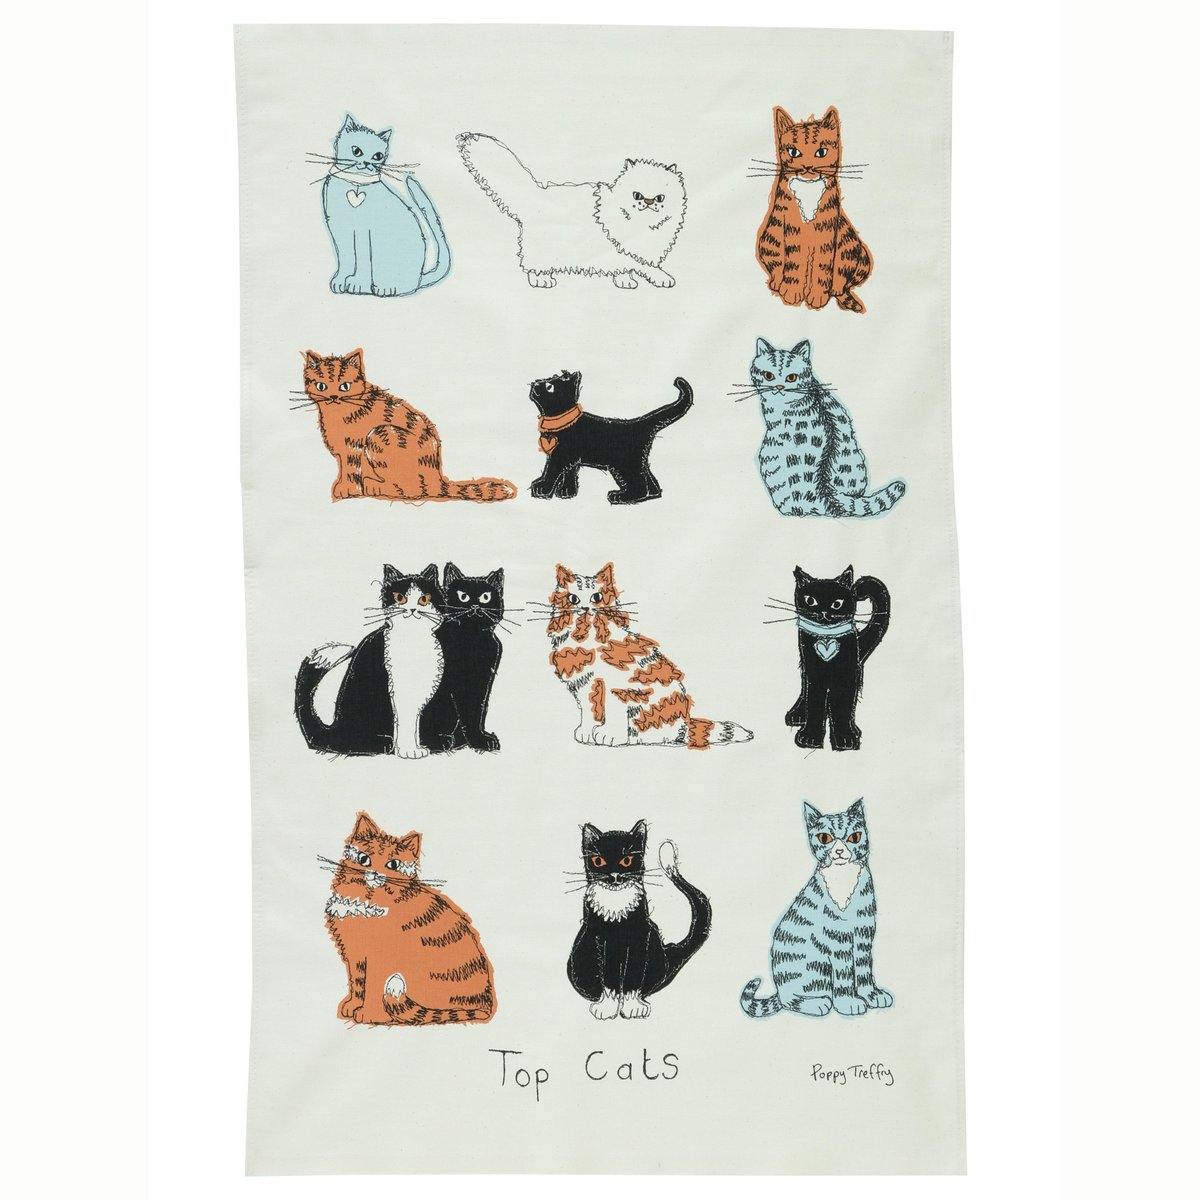 It's #competition time! Follow & RT to #win a 'Top Cats' tea towel from @PoppyTreffry ! Closes 02/08 at 1pm. https://t.co/TxSeiPYKNU